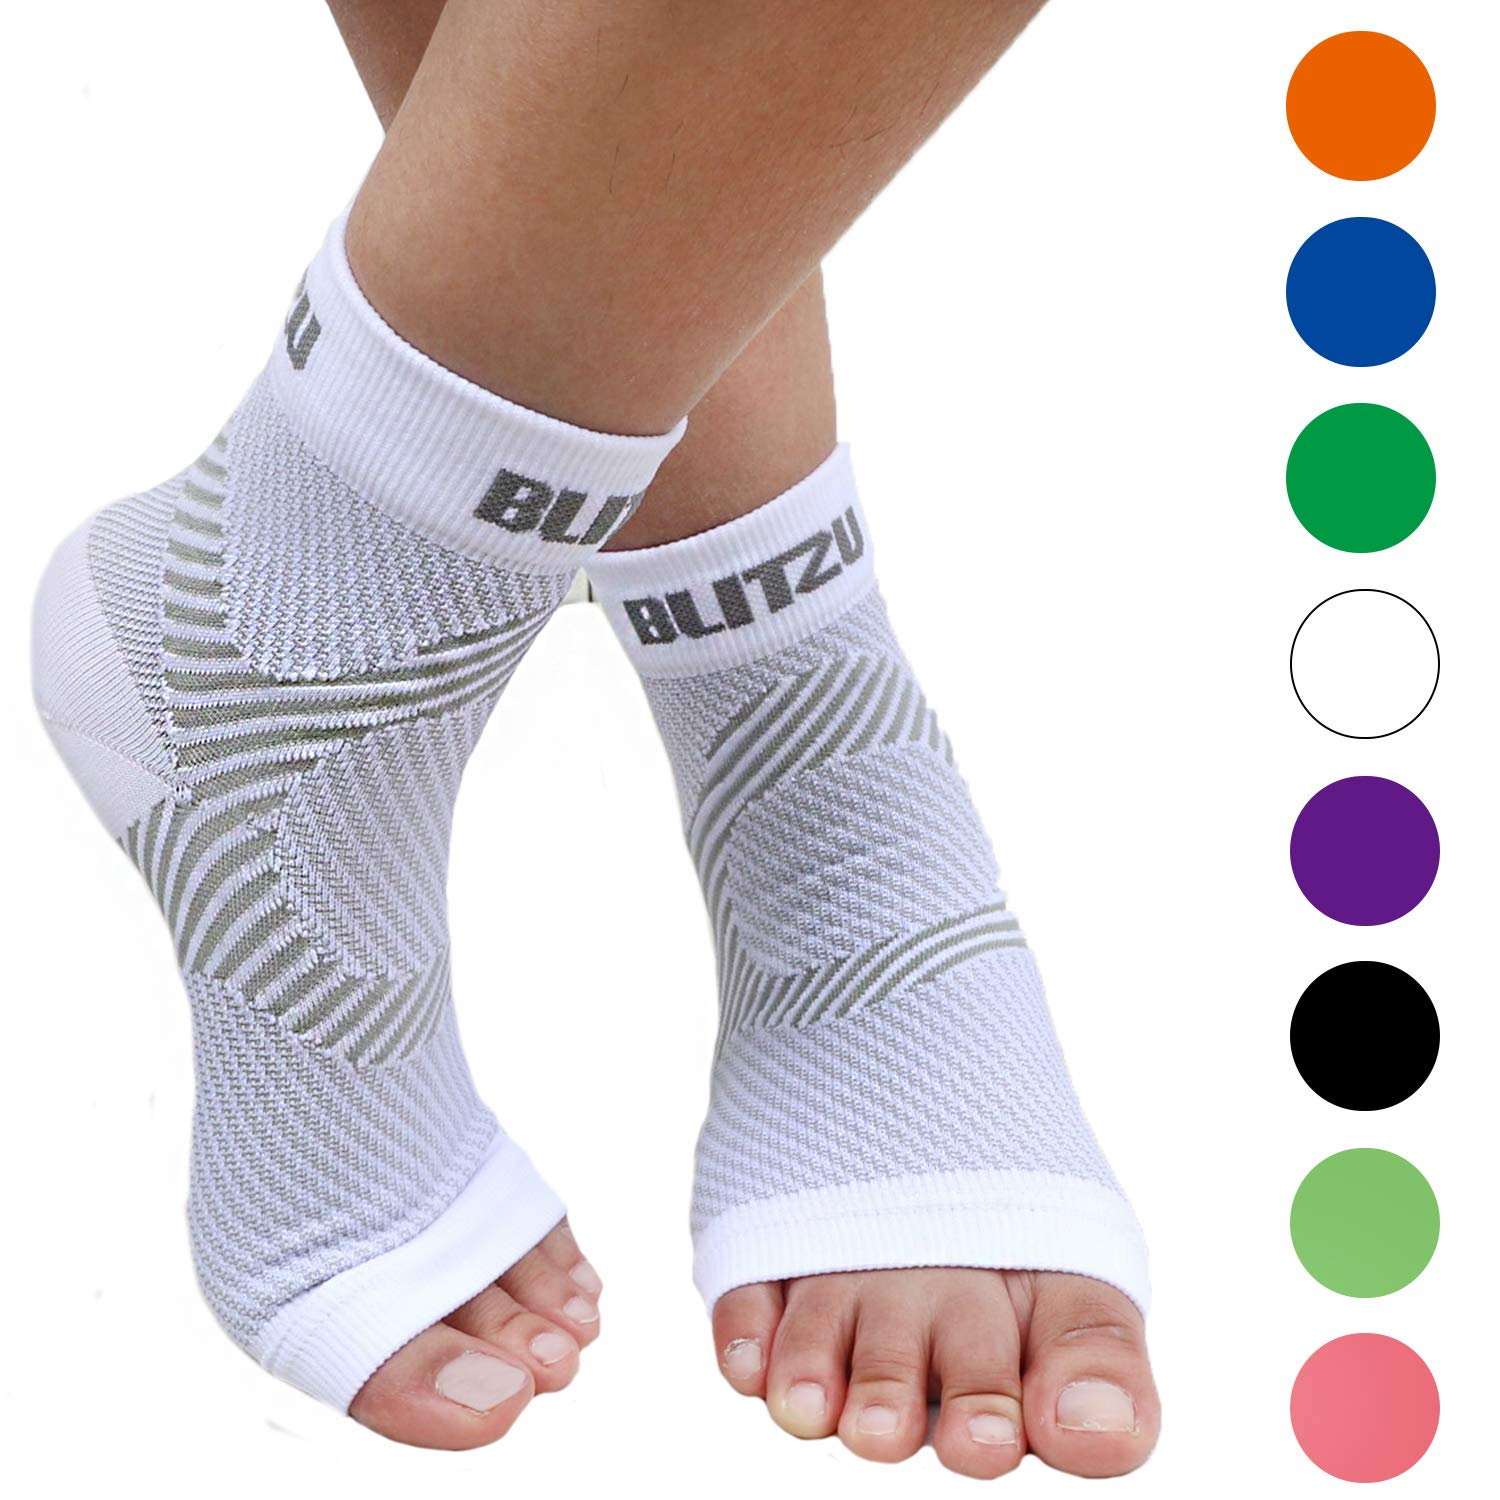 BLITZU Plantar Fasciitis Socks with Arch Support, Foot Care Compression Sleeve, Eases Swelling & Heel Spurs, Ankle Brace Support, Relieve Pain Fast White S-M by BLITZU